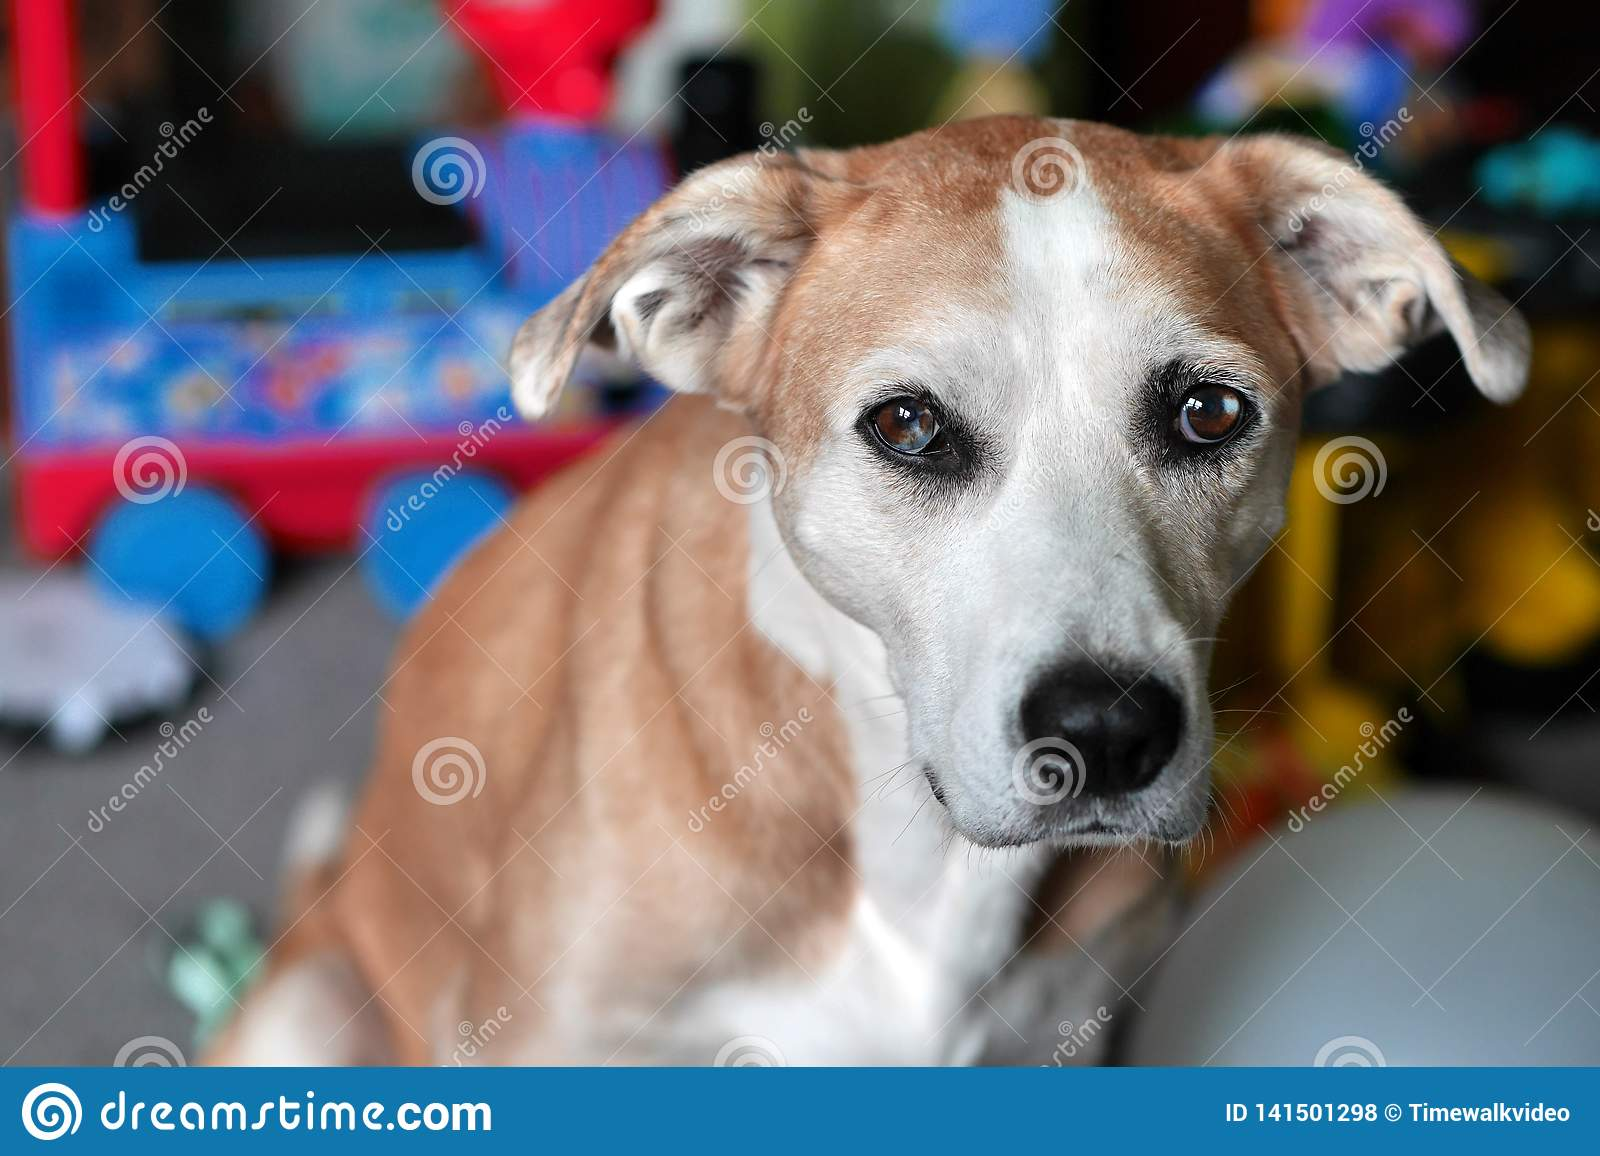 Gorgeous Beagle Mix Dog with Blue-Brown Swirl Eyes